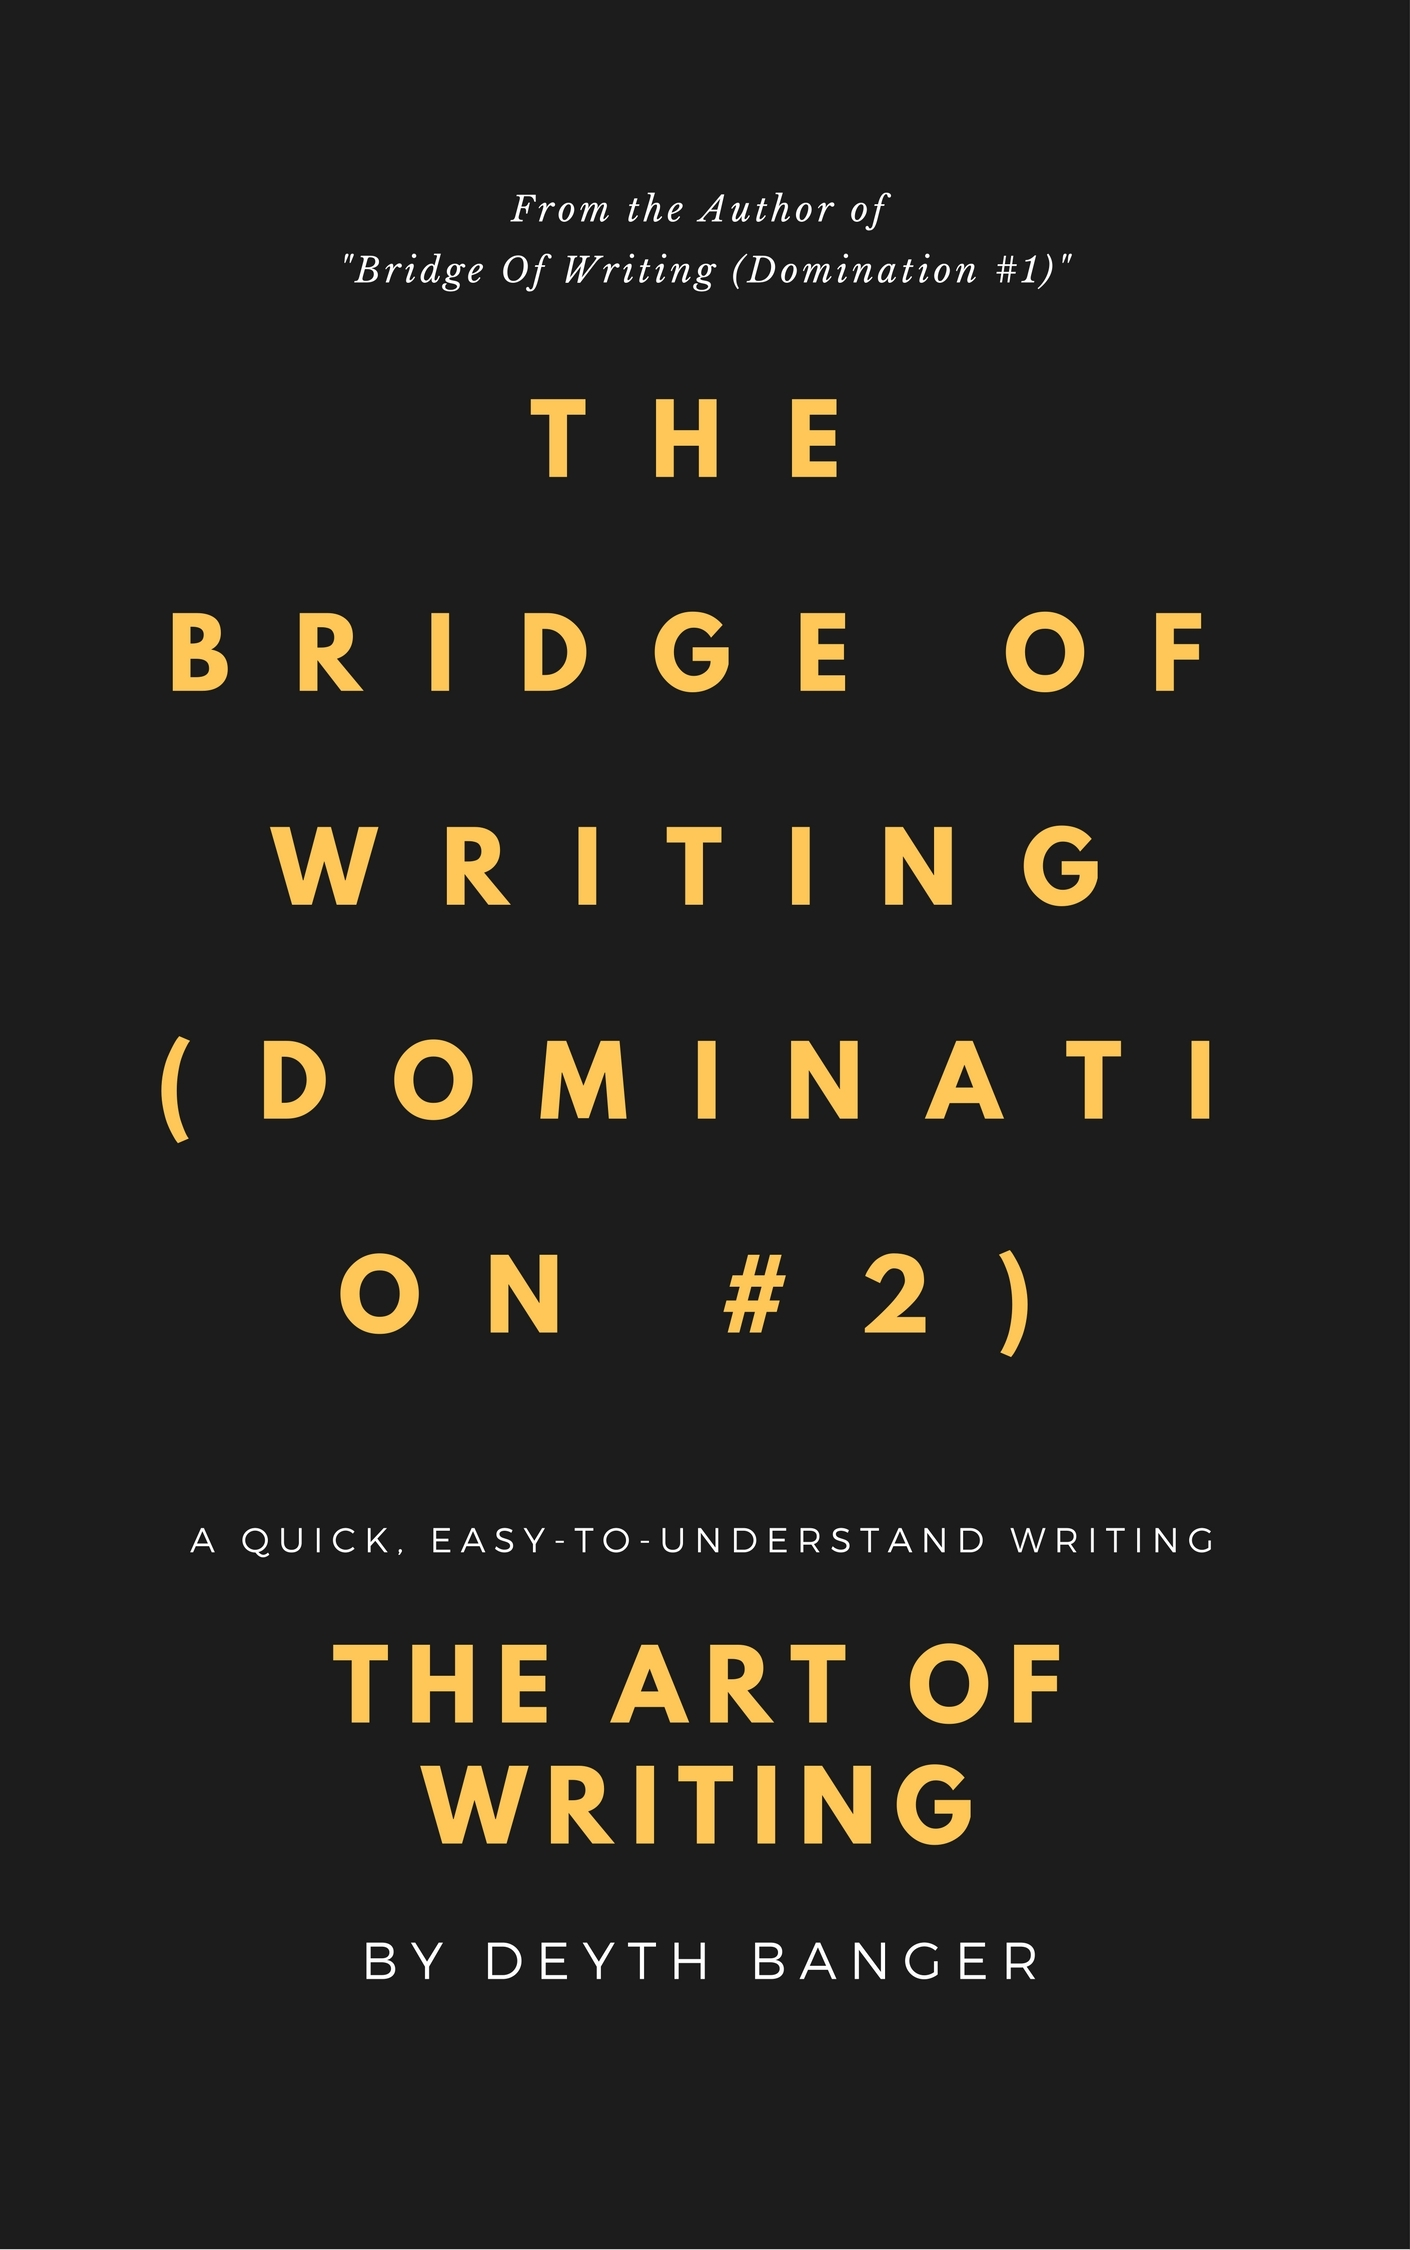 deyth-banger-bridge-of-writing-domination-2